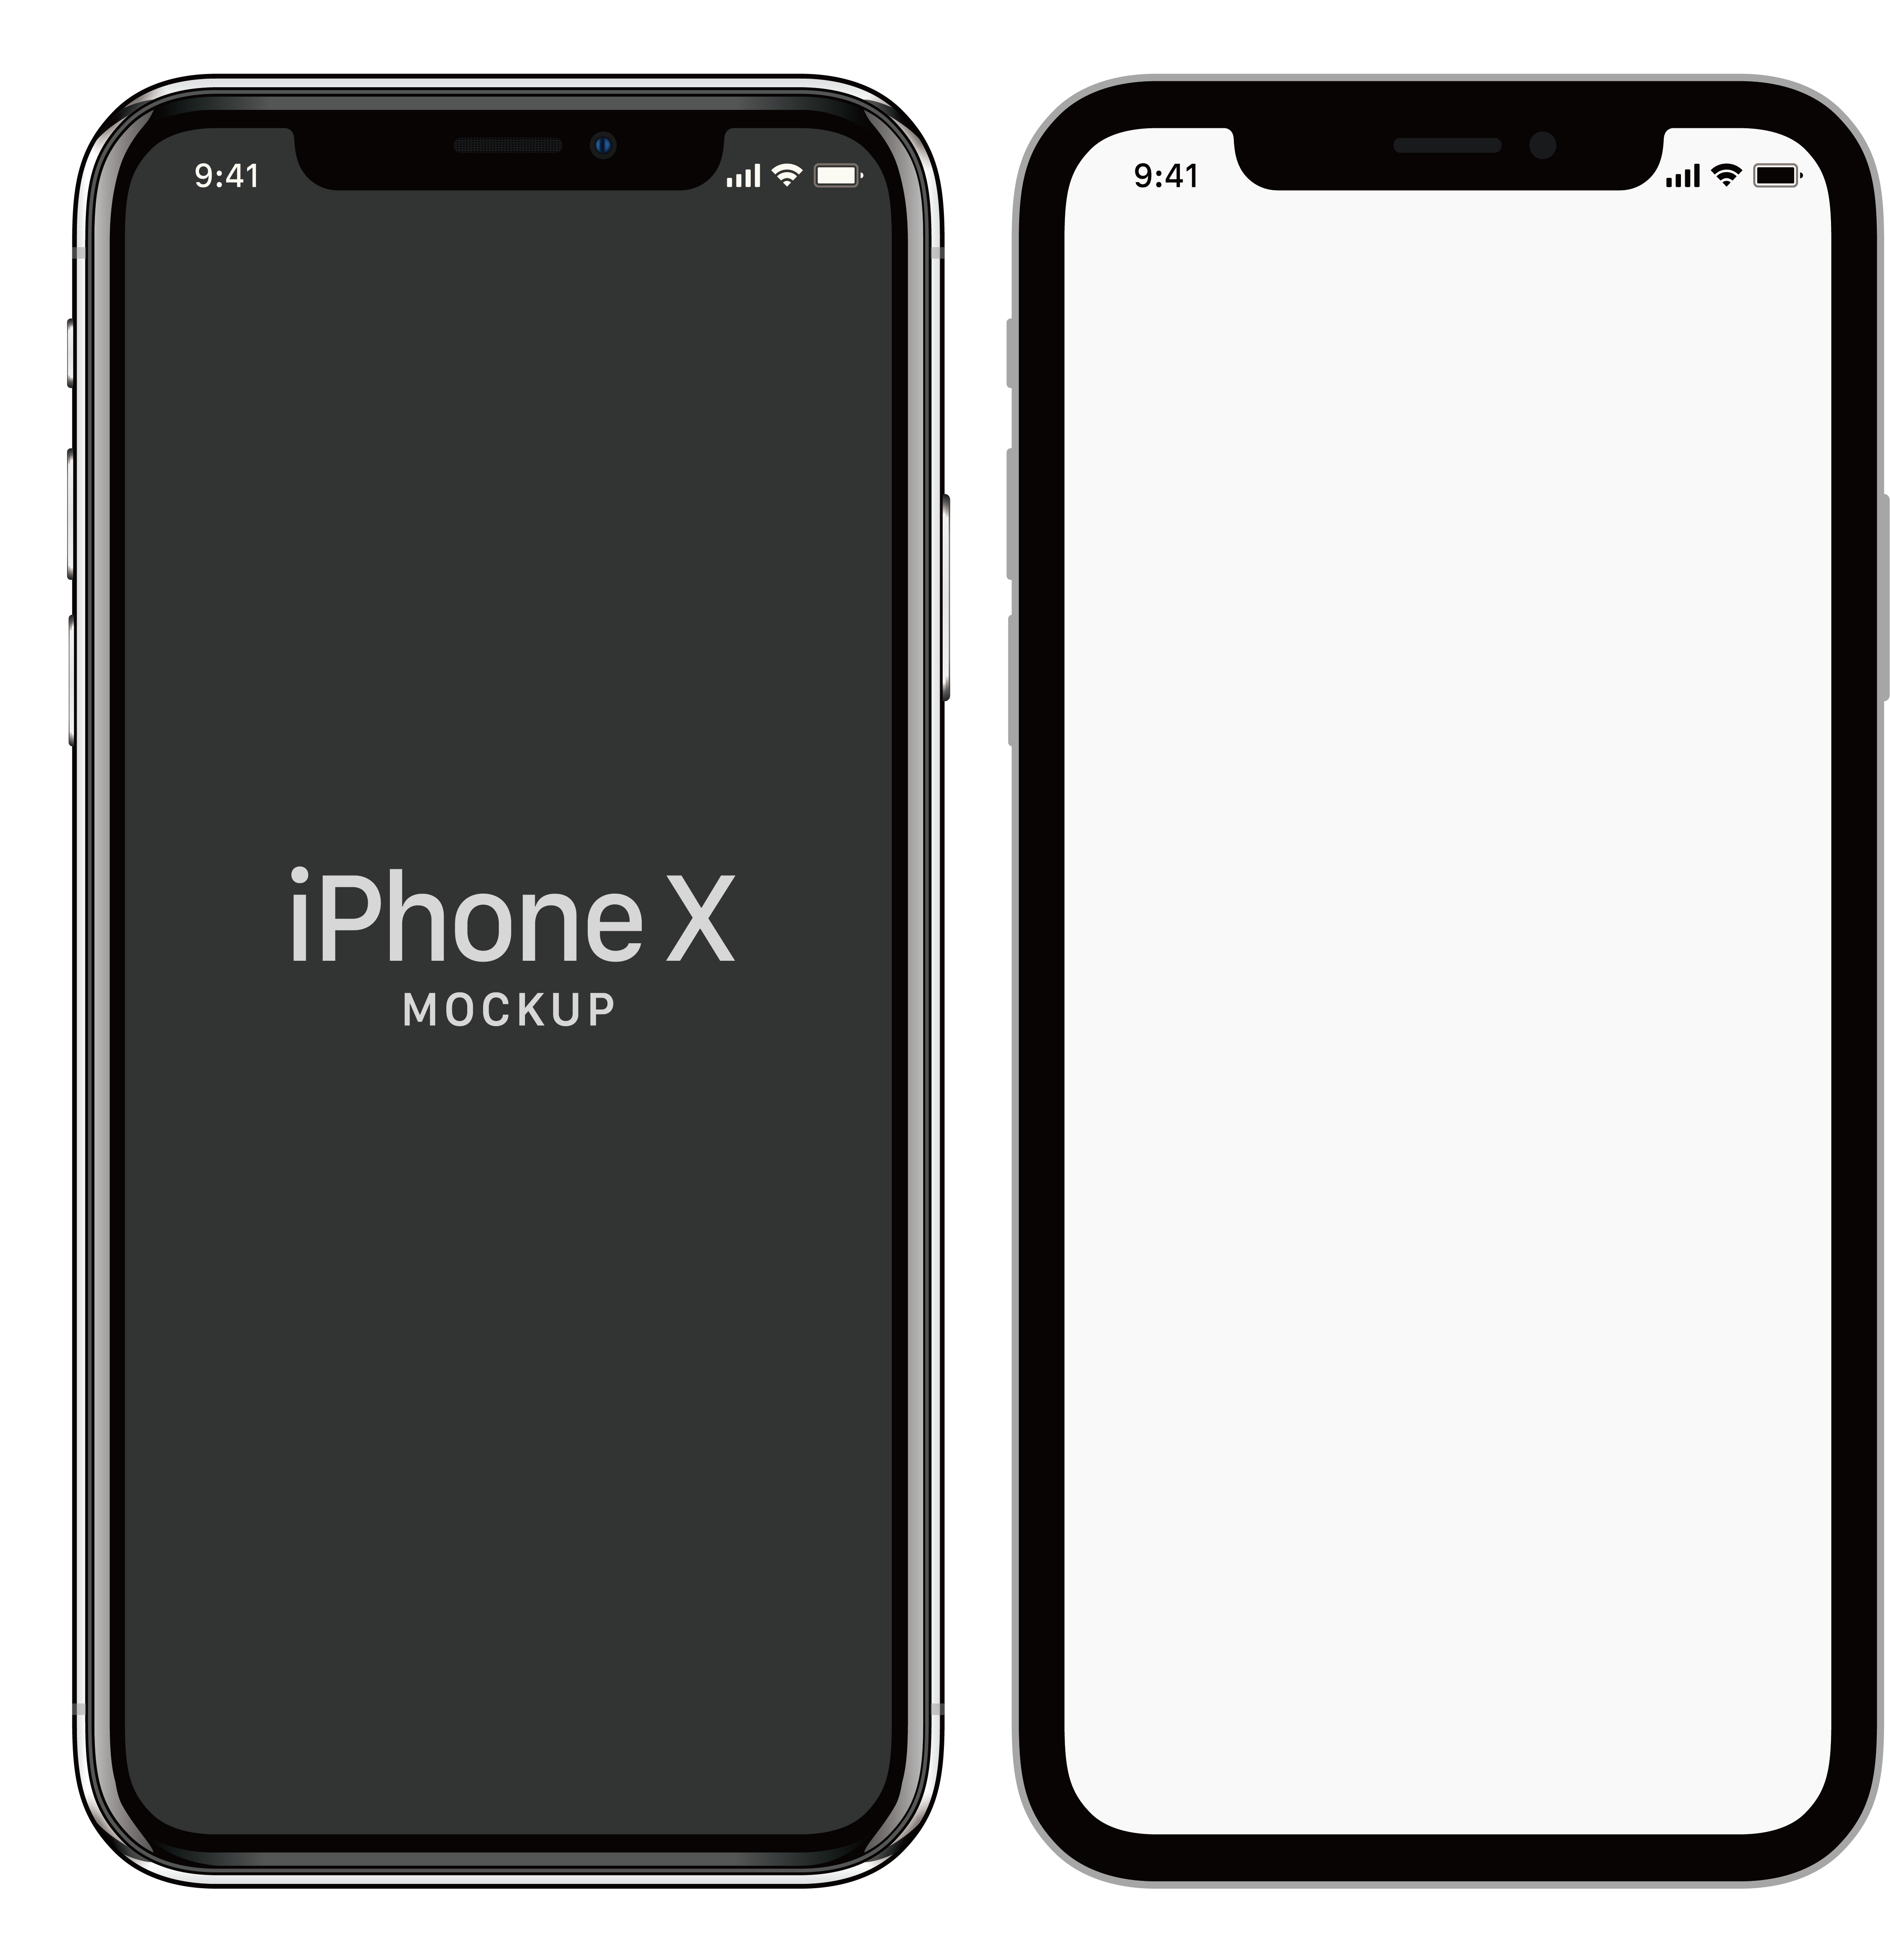 Iphone x clipart free graphic download iPhone X iPhone 6 Smartphone Apple - Apple Mobile Design png ... graphic download